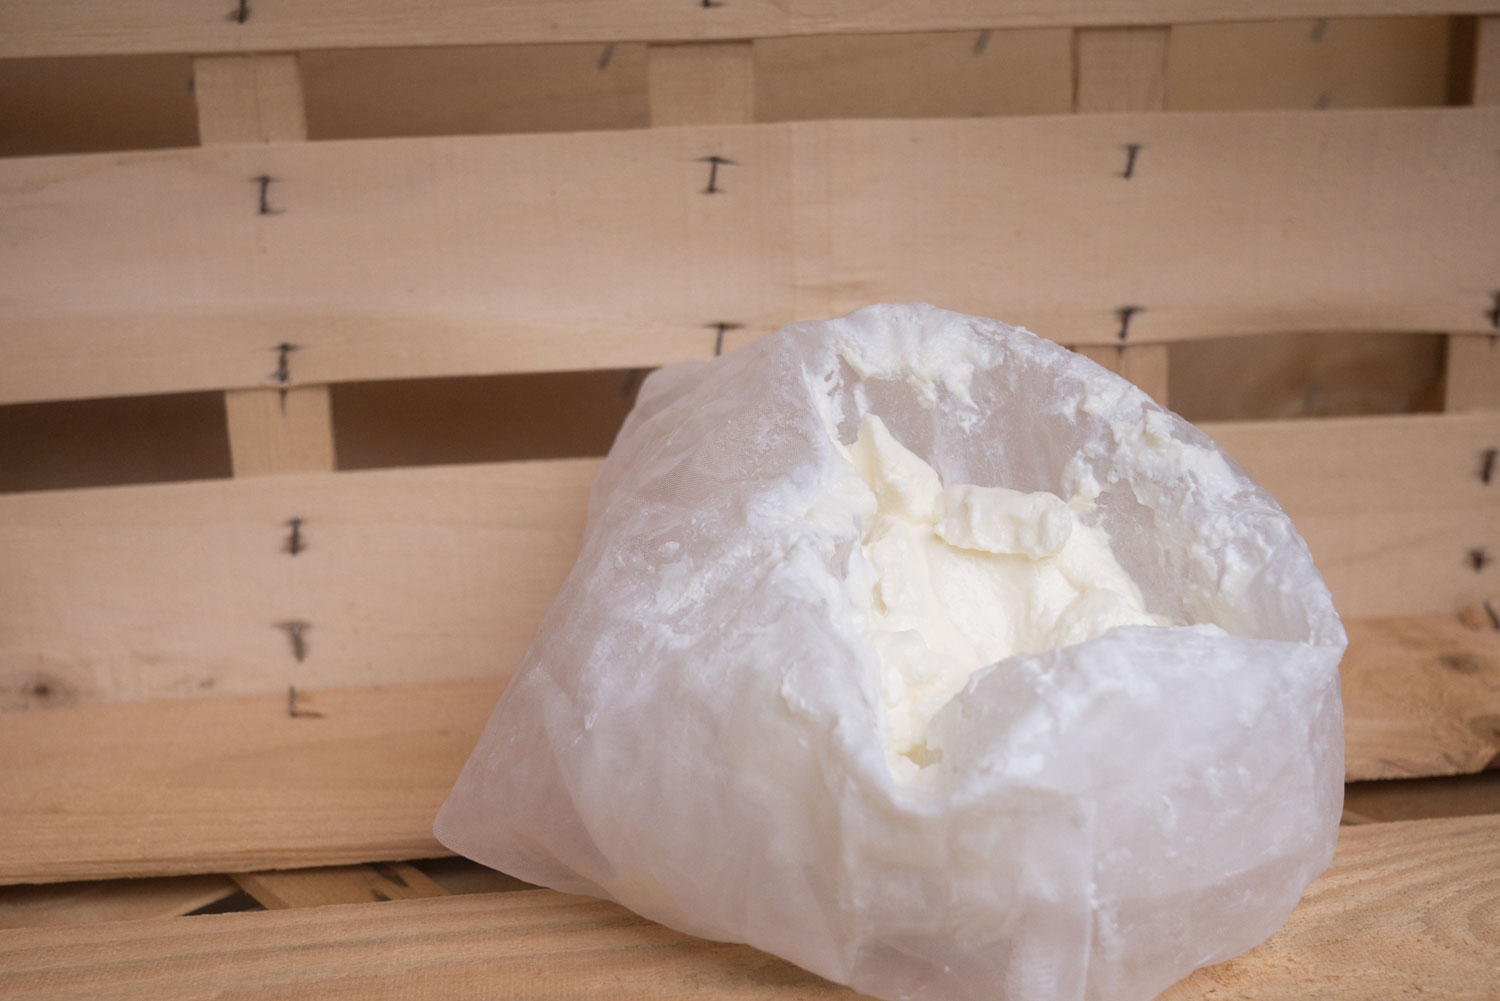 5. After the whey has seeped out, you will be left with a lump of soft cheese.